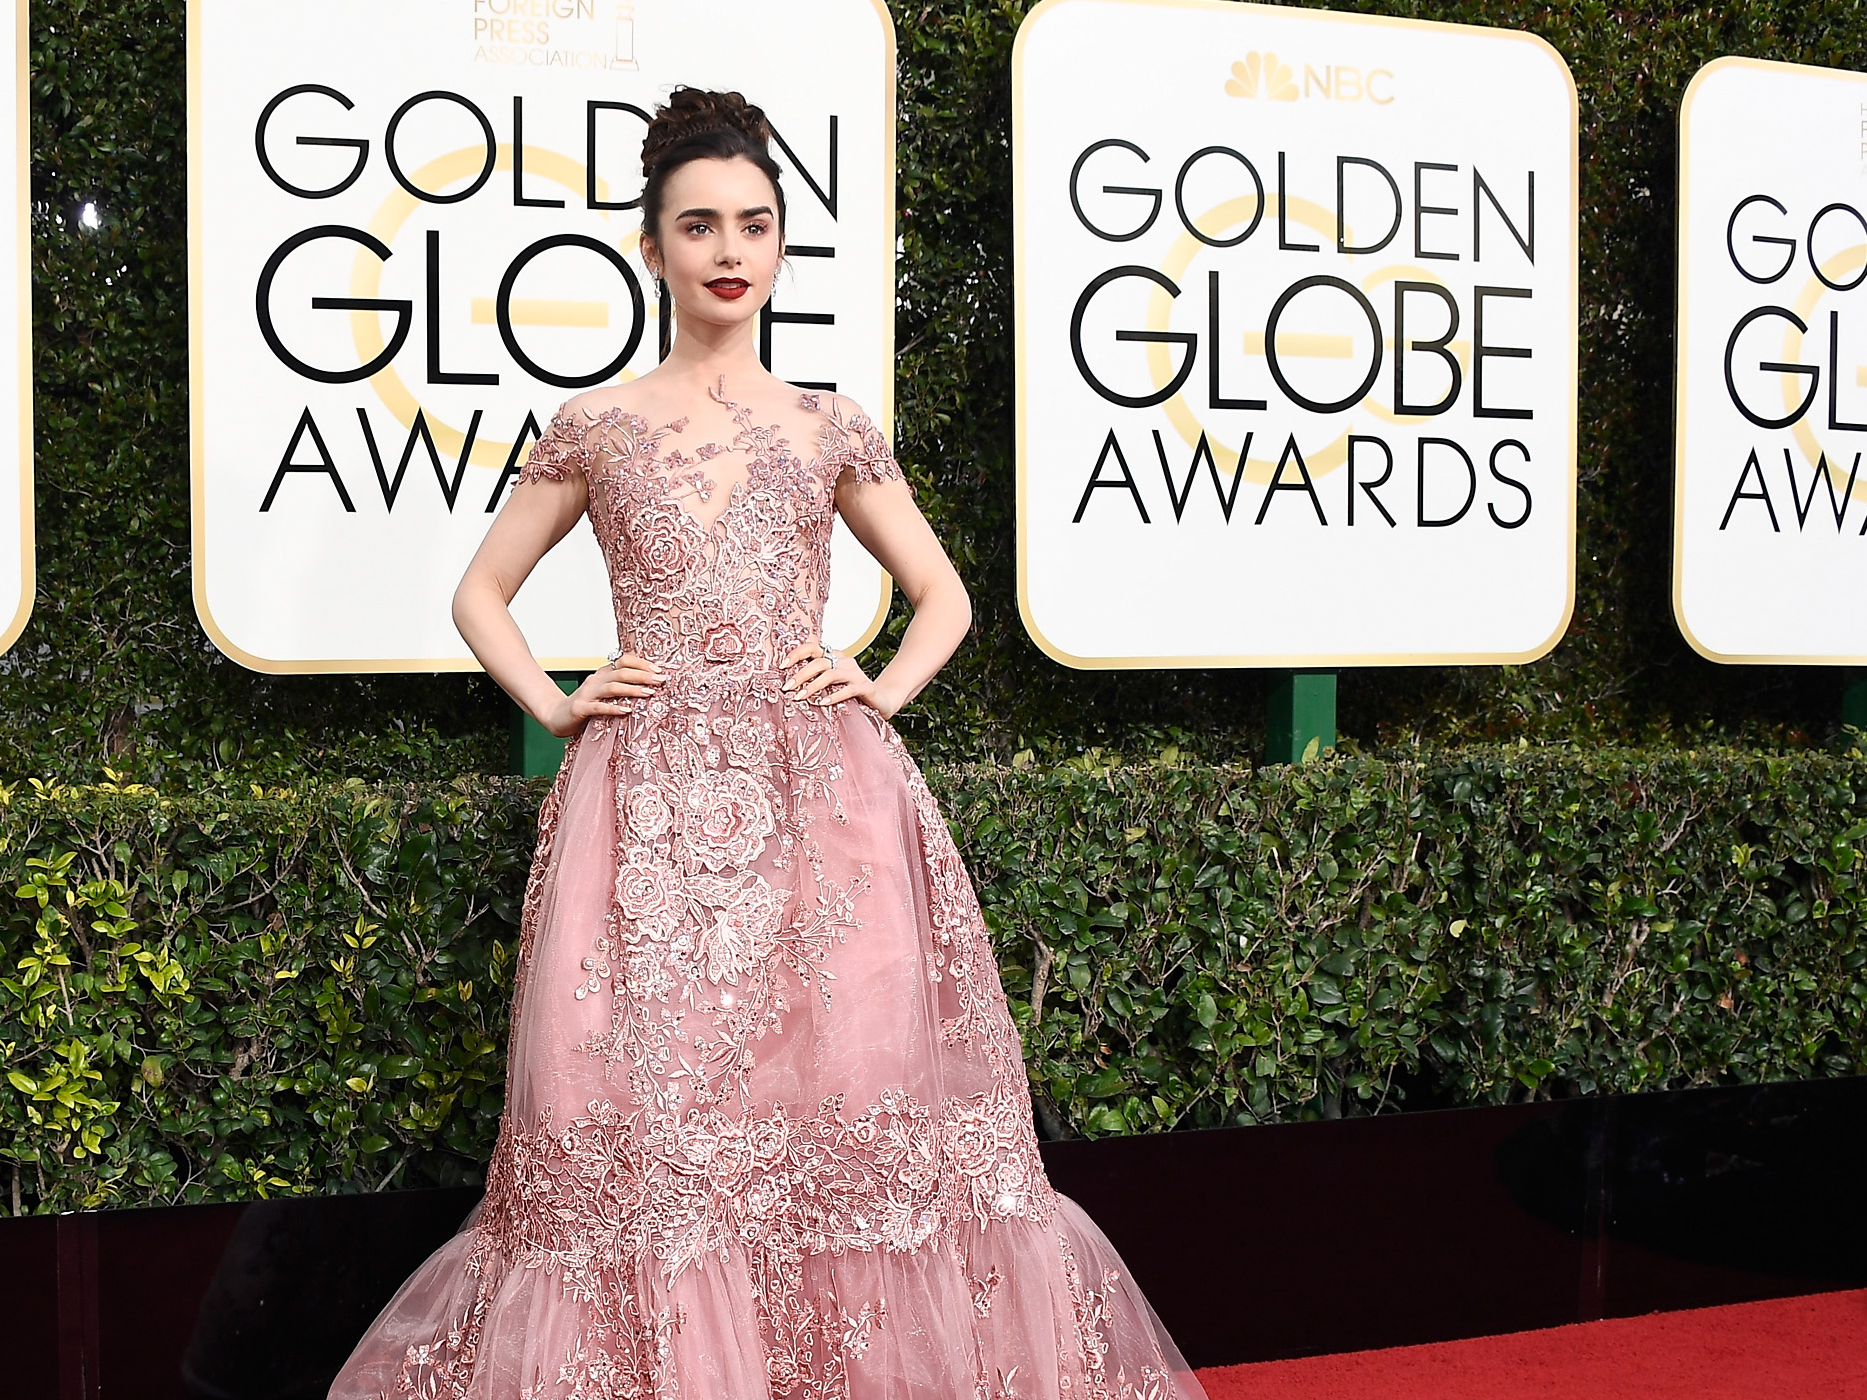 Elodie-Blog-Golden-Globes-2017_photo-Lily-face